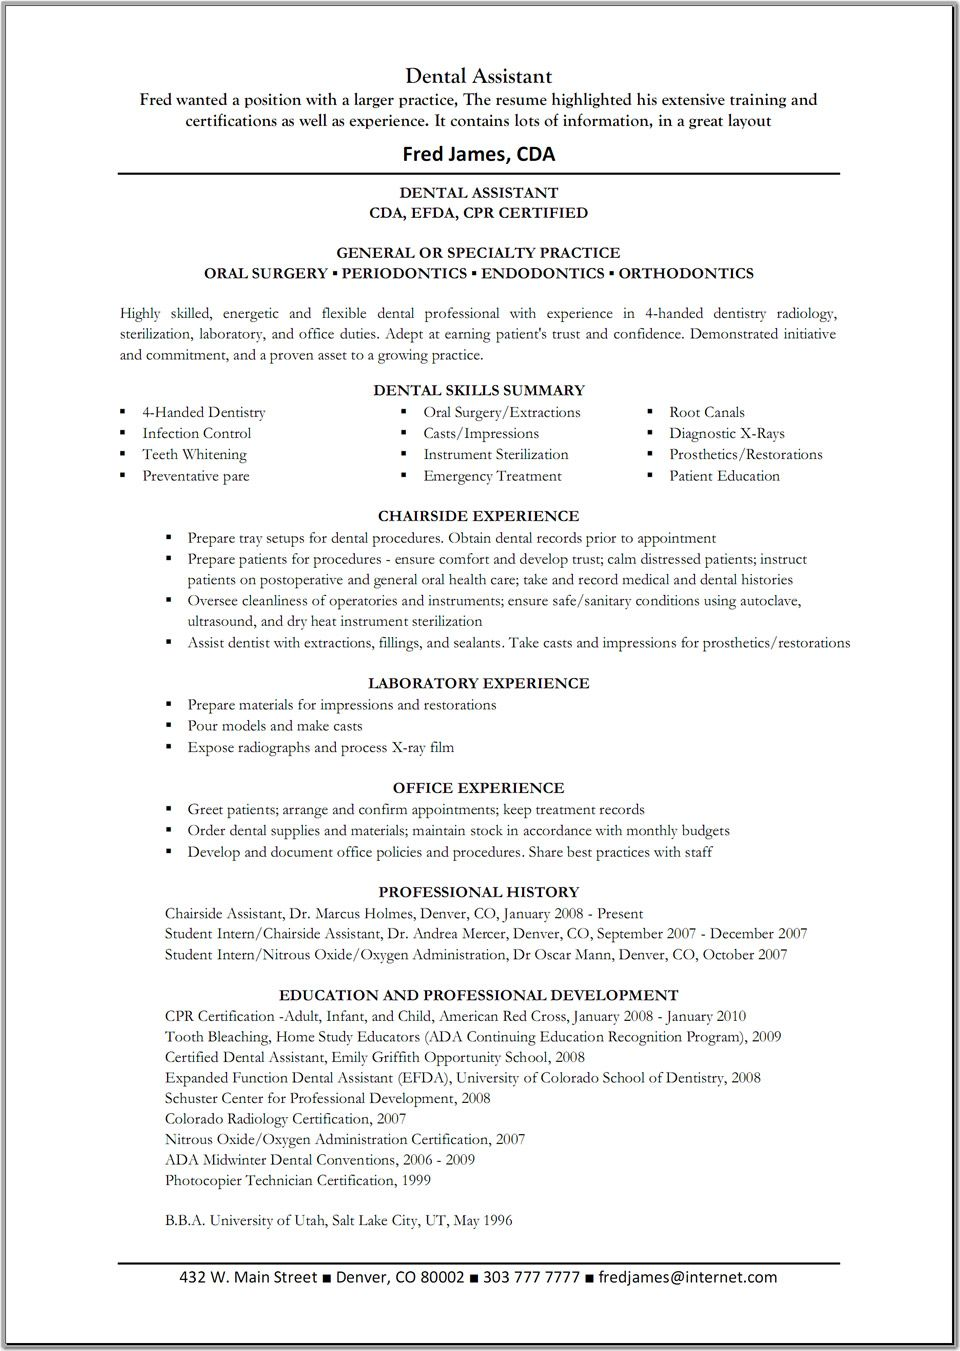 Legal Assistant Resume Amazing Dental Assistant Resume Template  Great Resume Templates  Dental